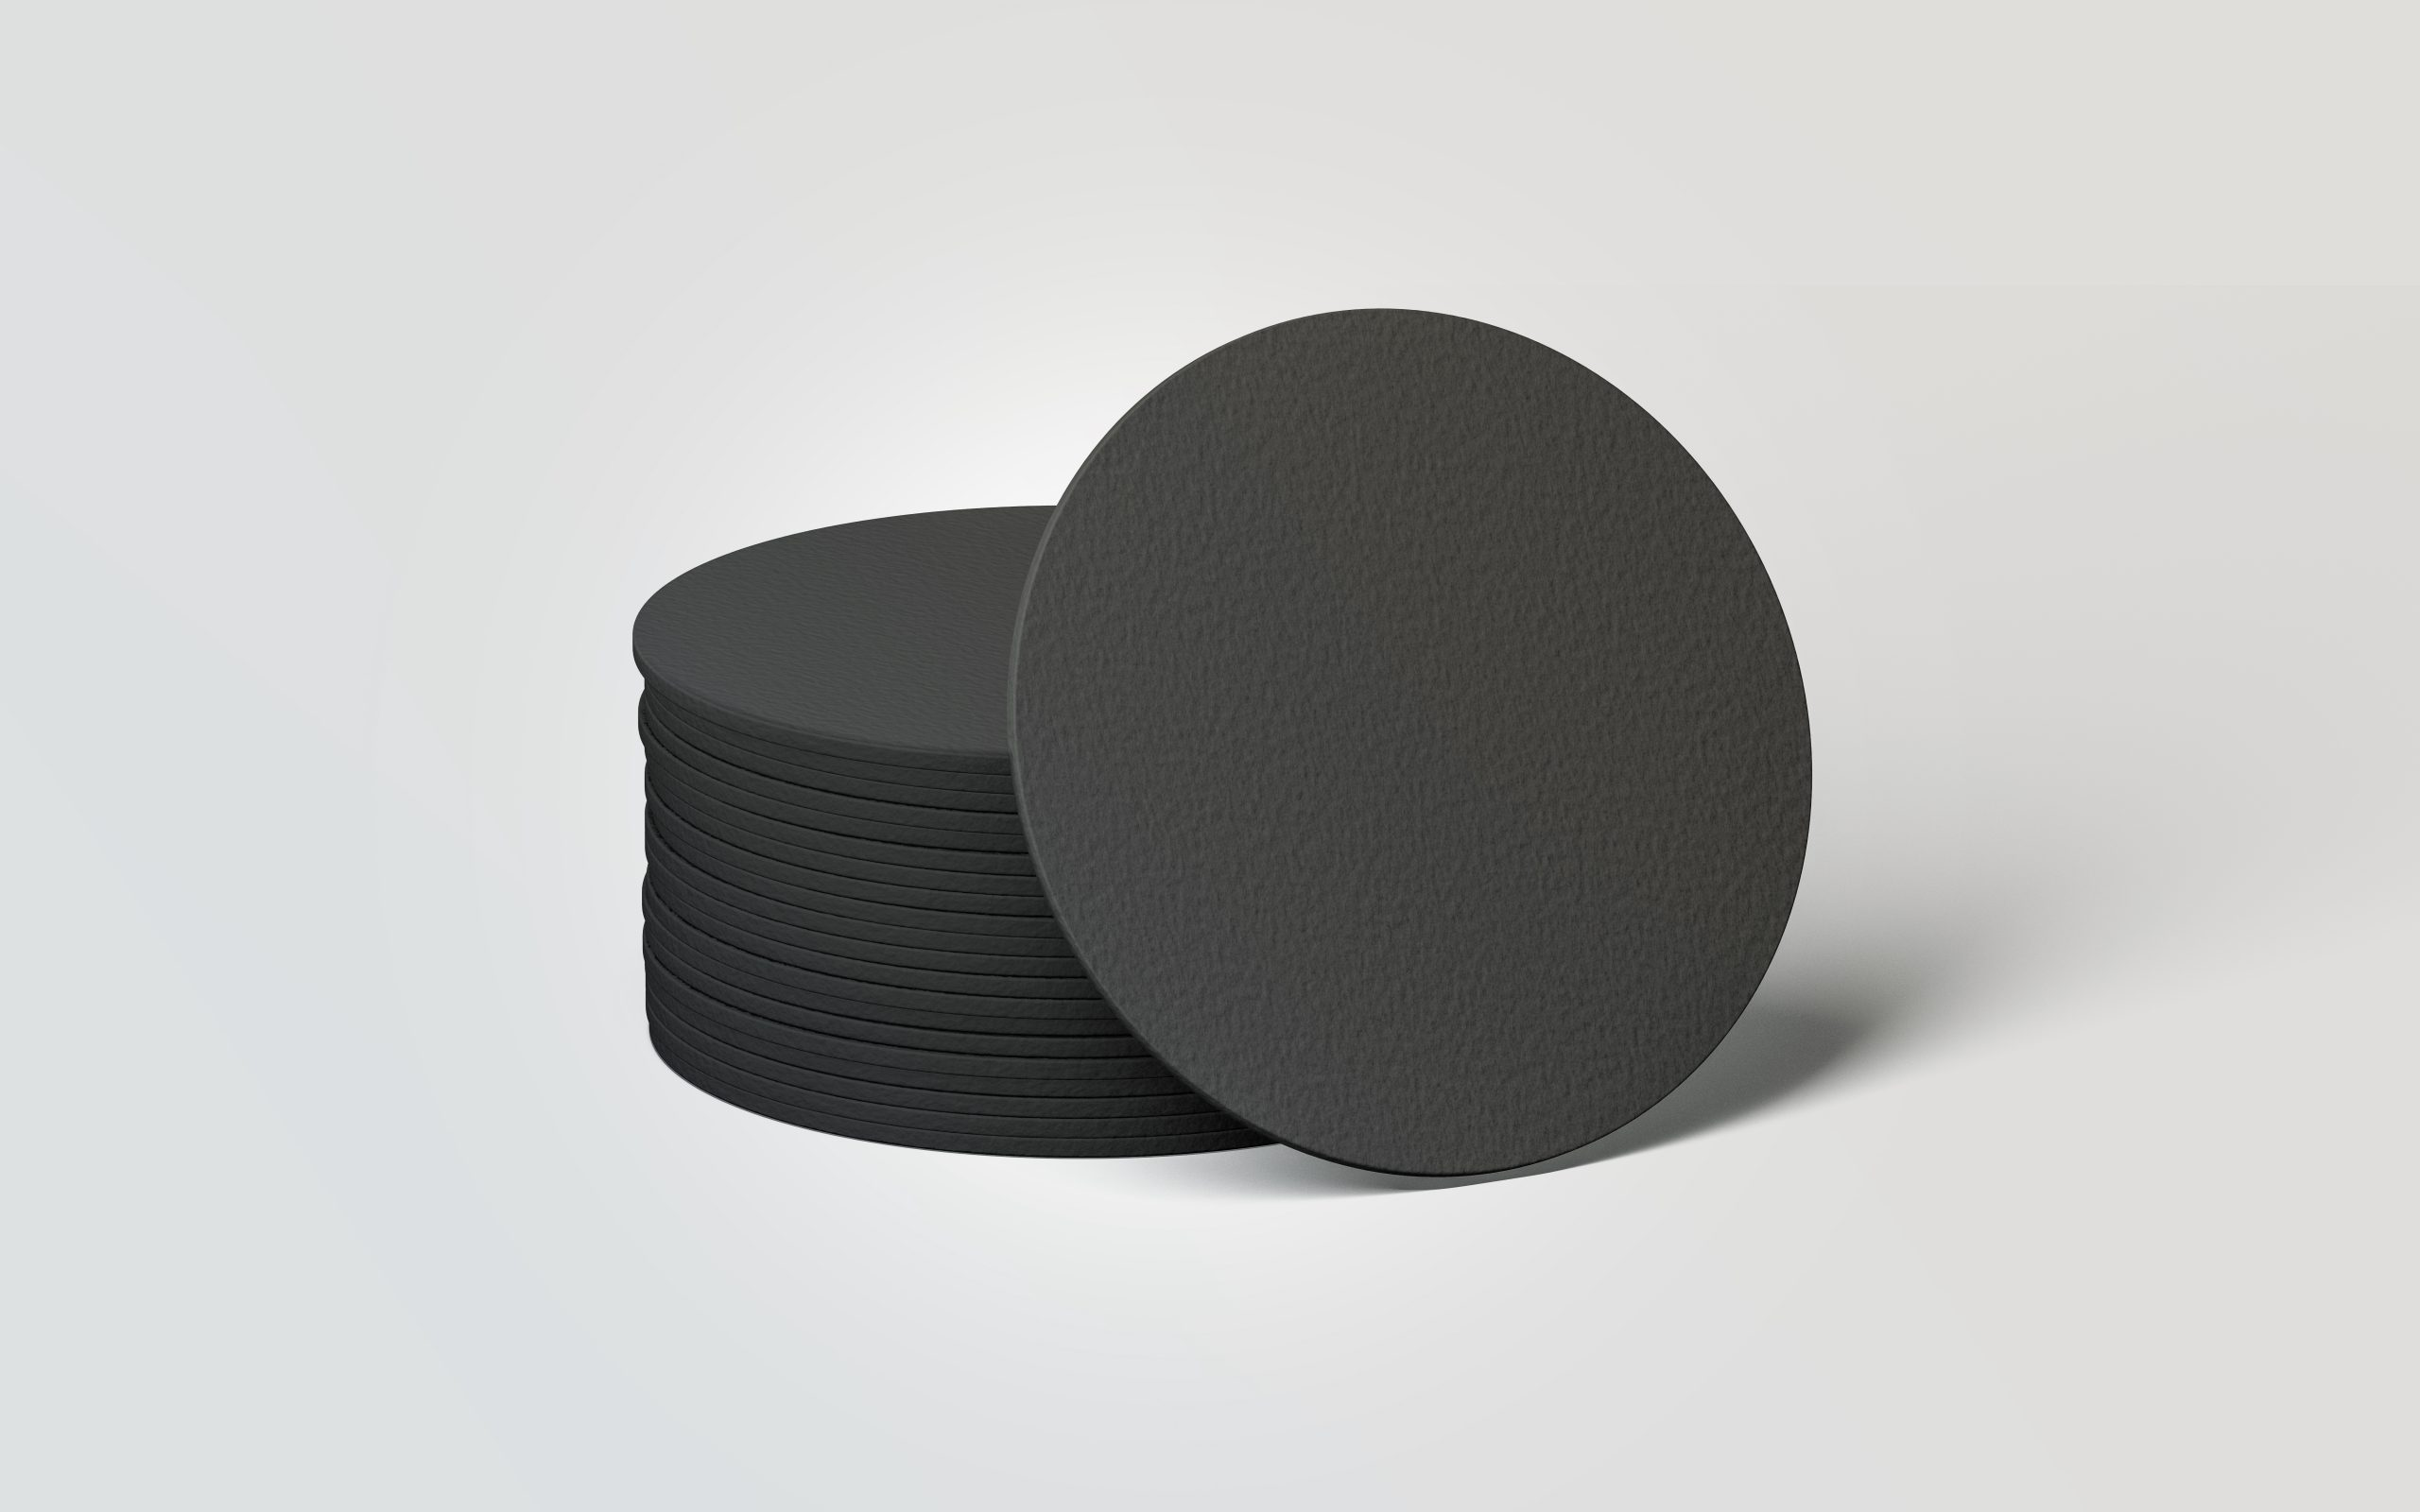 Blank black round beer coasters stack mockup, 3d rendering. Empty protection display mock up. Clear cardboard holder for beer or hot drink. Pile of label holder template for bar branding.